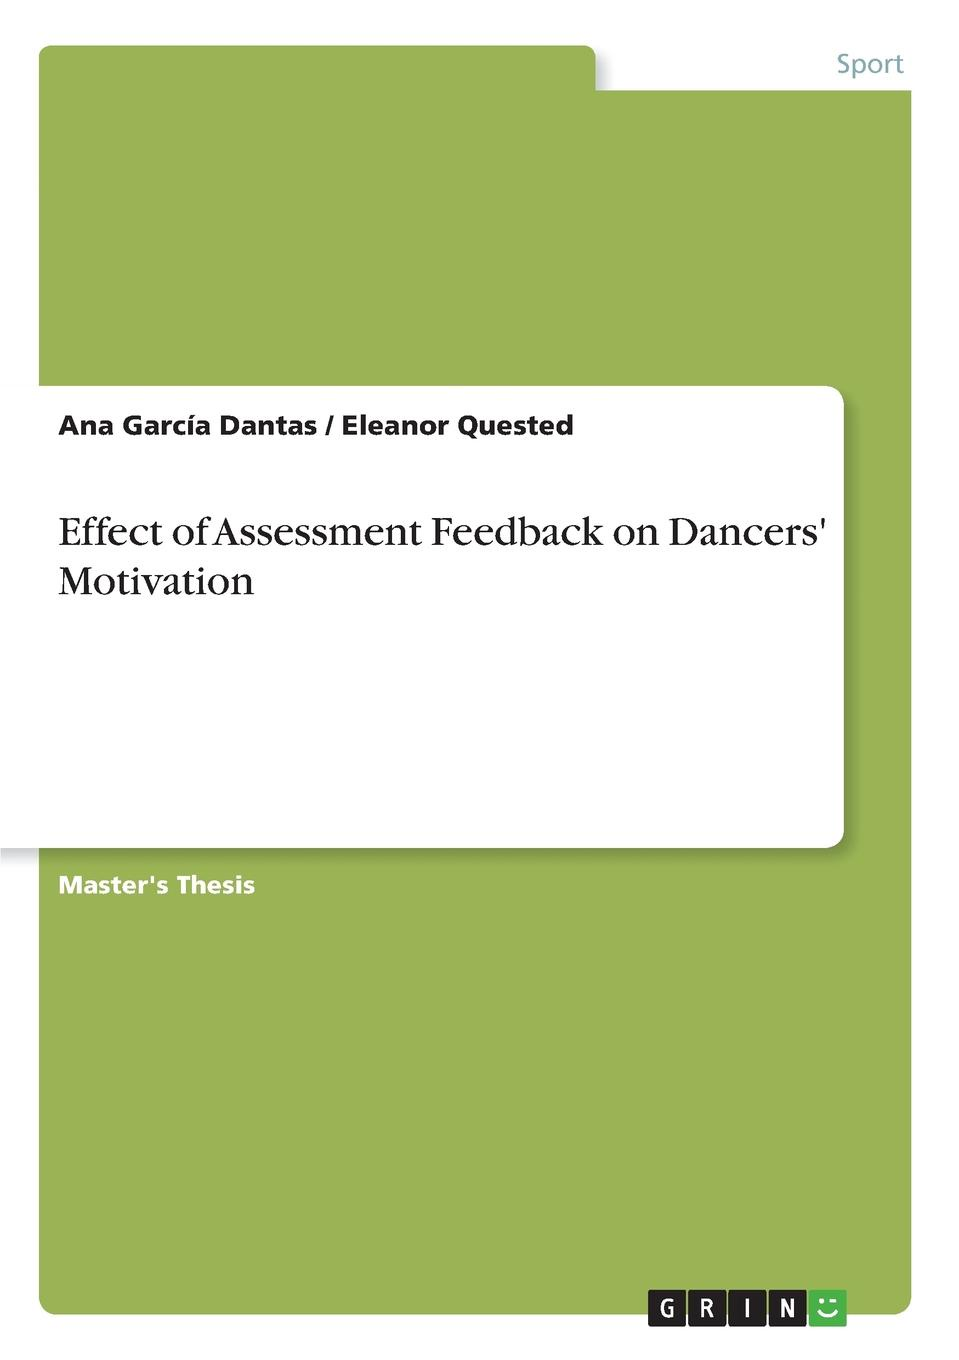 Ana García Dantas, Eleanor Quested Effect of Assessment Feedback on Dancers. Motivation learning english language via snss and students academic self efficacy